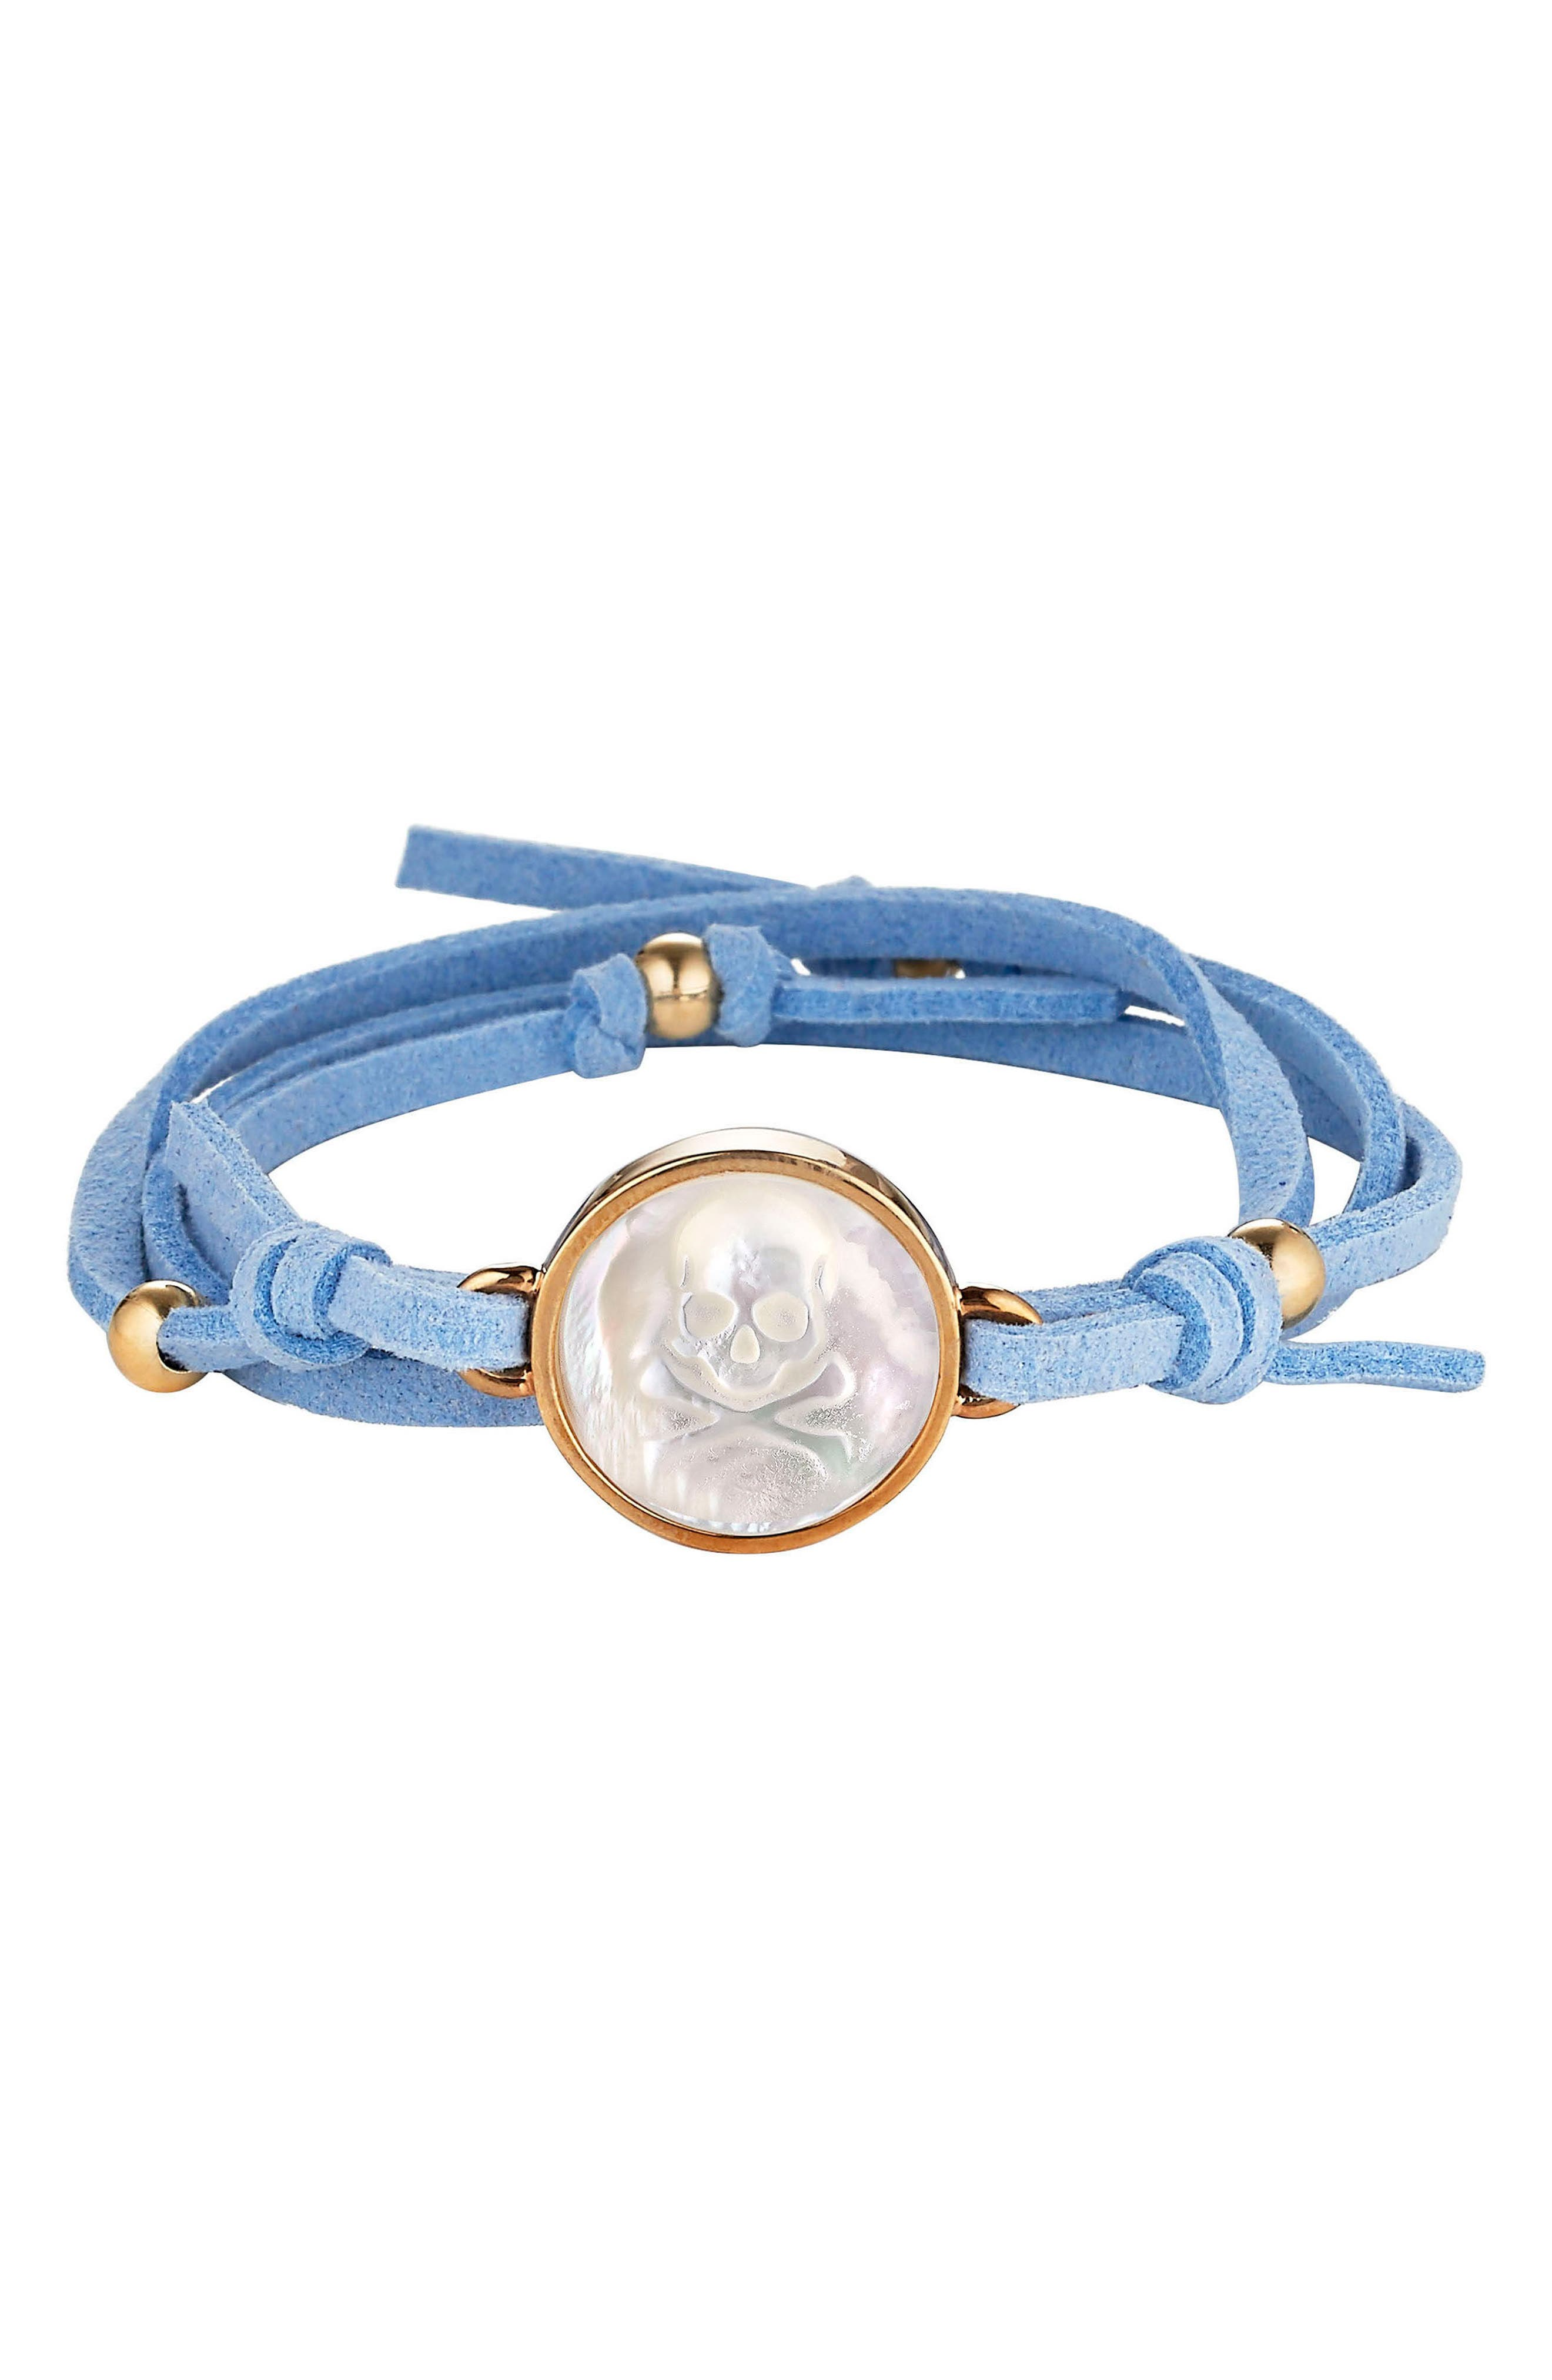 Skull & Bones Suede Wrap Bracelet,                         Main,                         color, Light Blue Skull